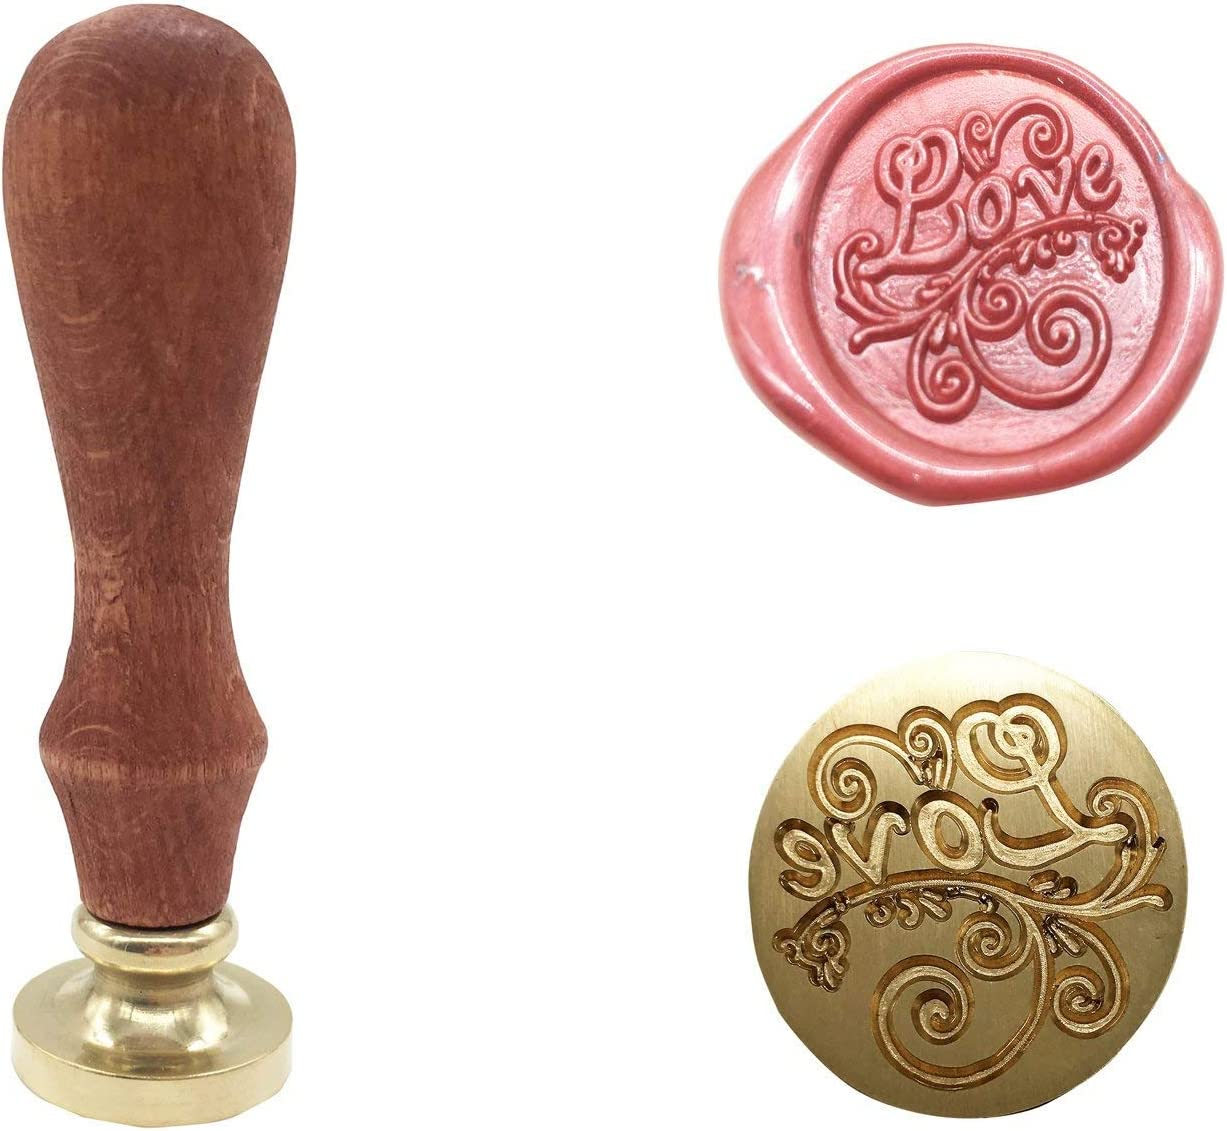 Gold-Arrow Love Vintage Retro Classical Wax Sealing Stamp Arts Crafts Romantic Symbol Wax Seal Stamp Metal Stamp Fancy Greetings for Wedding Invitation Letter